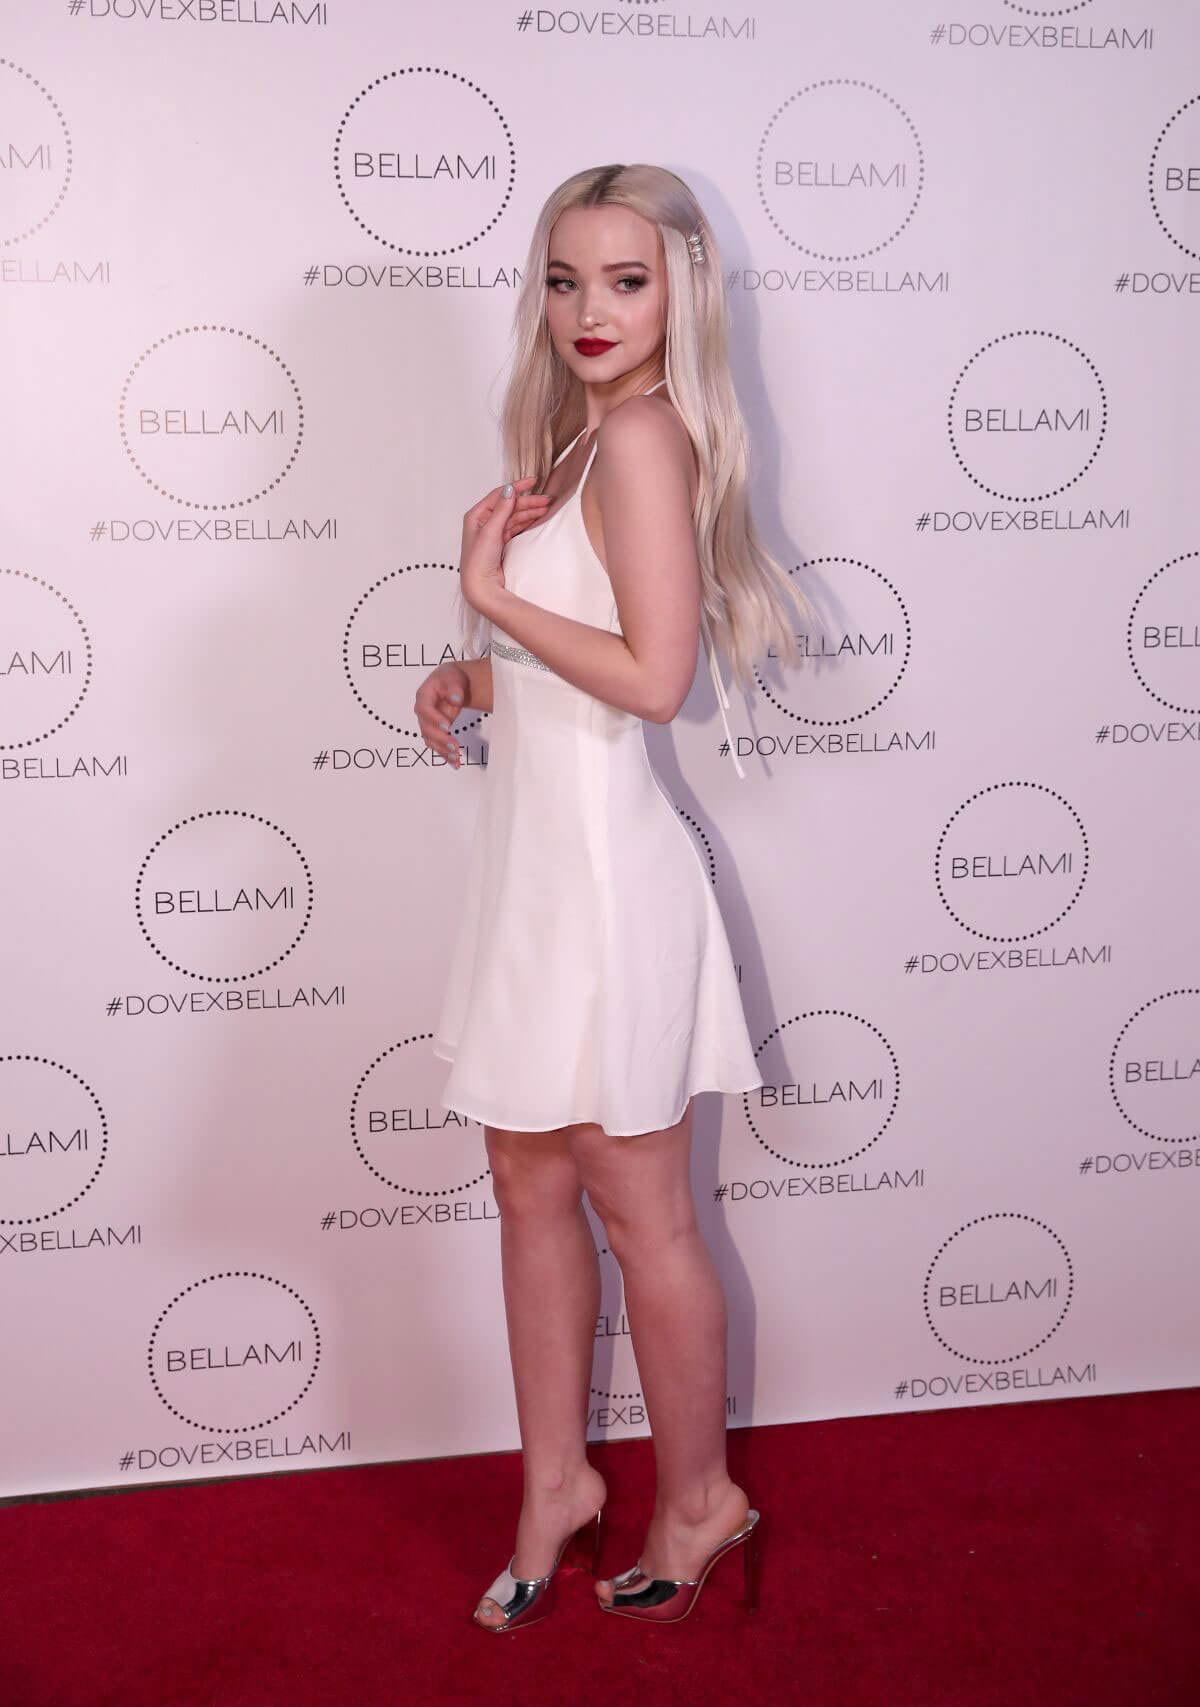 Dove Cameron Stills at Dove x Bellami Collection Launch Party in Los Angeles